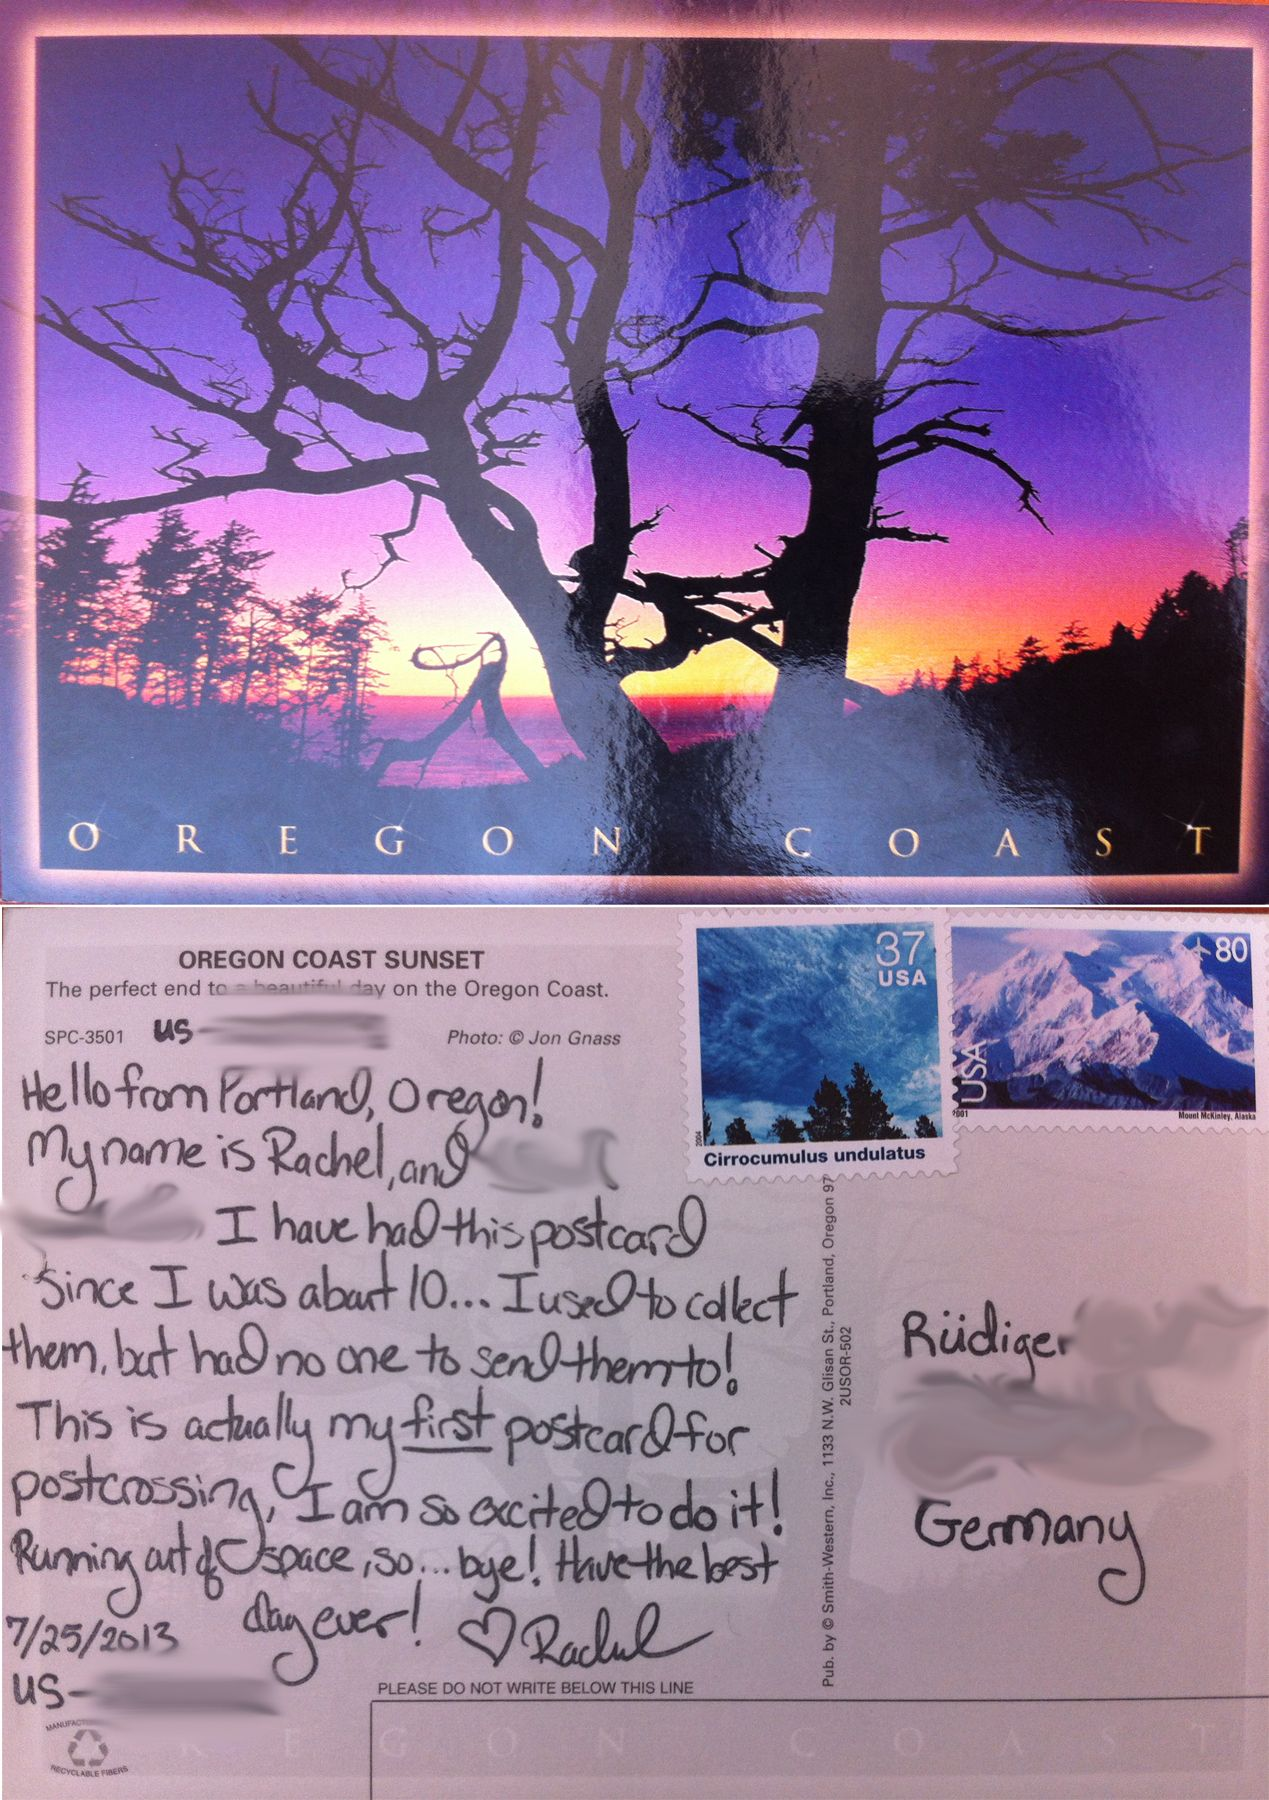 The First Postcard I Sent For Postcrossing Front And Back